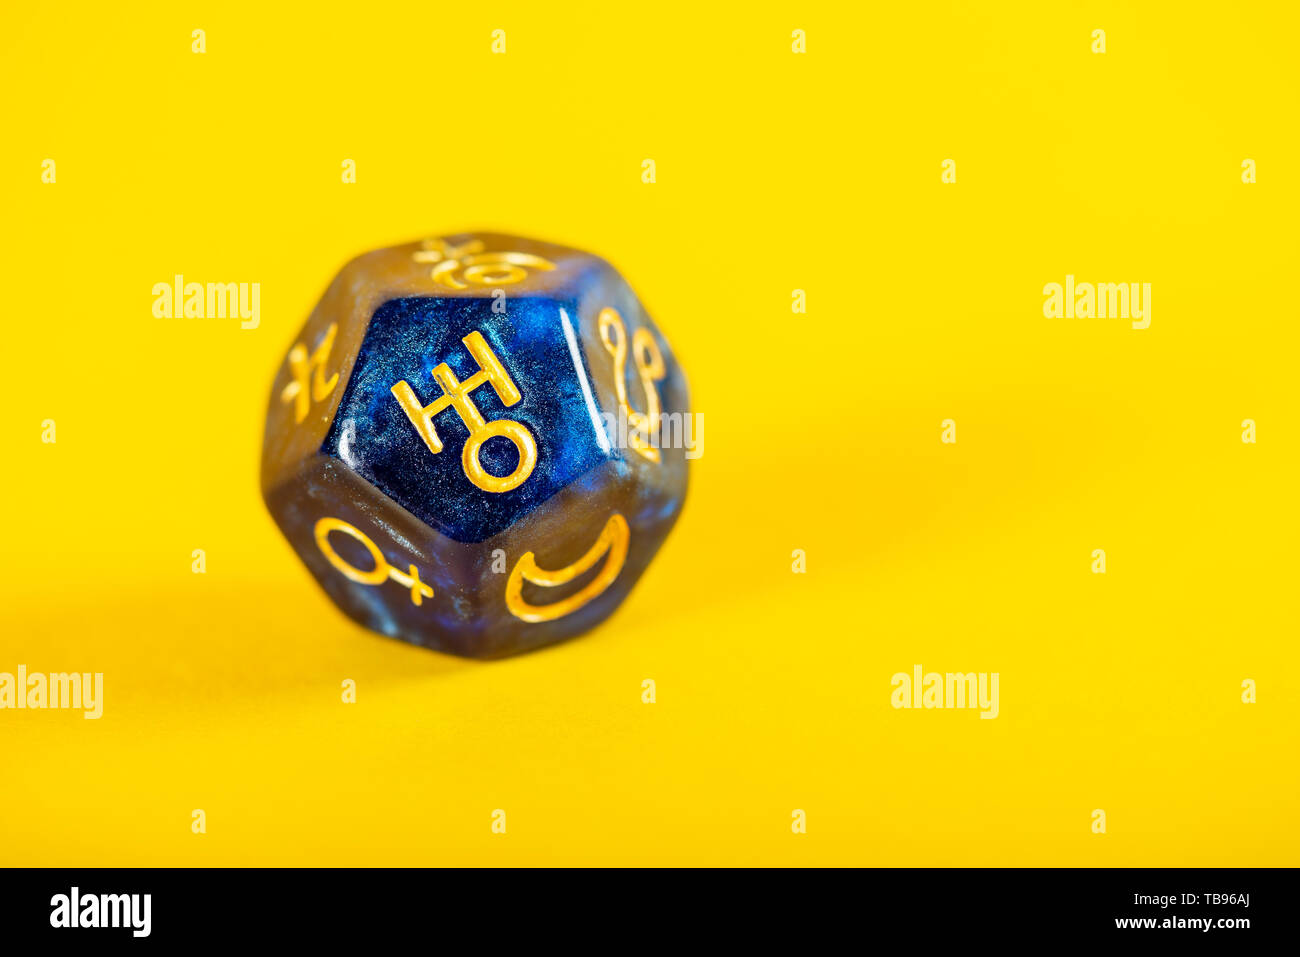 Astrology Dice with symbol of the planet Uranus on Yellow